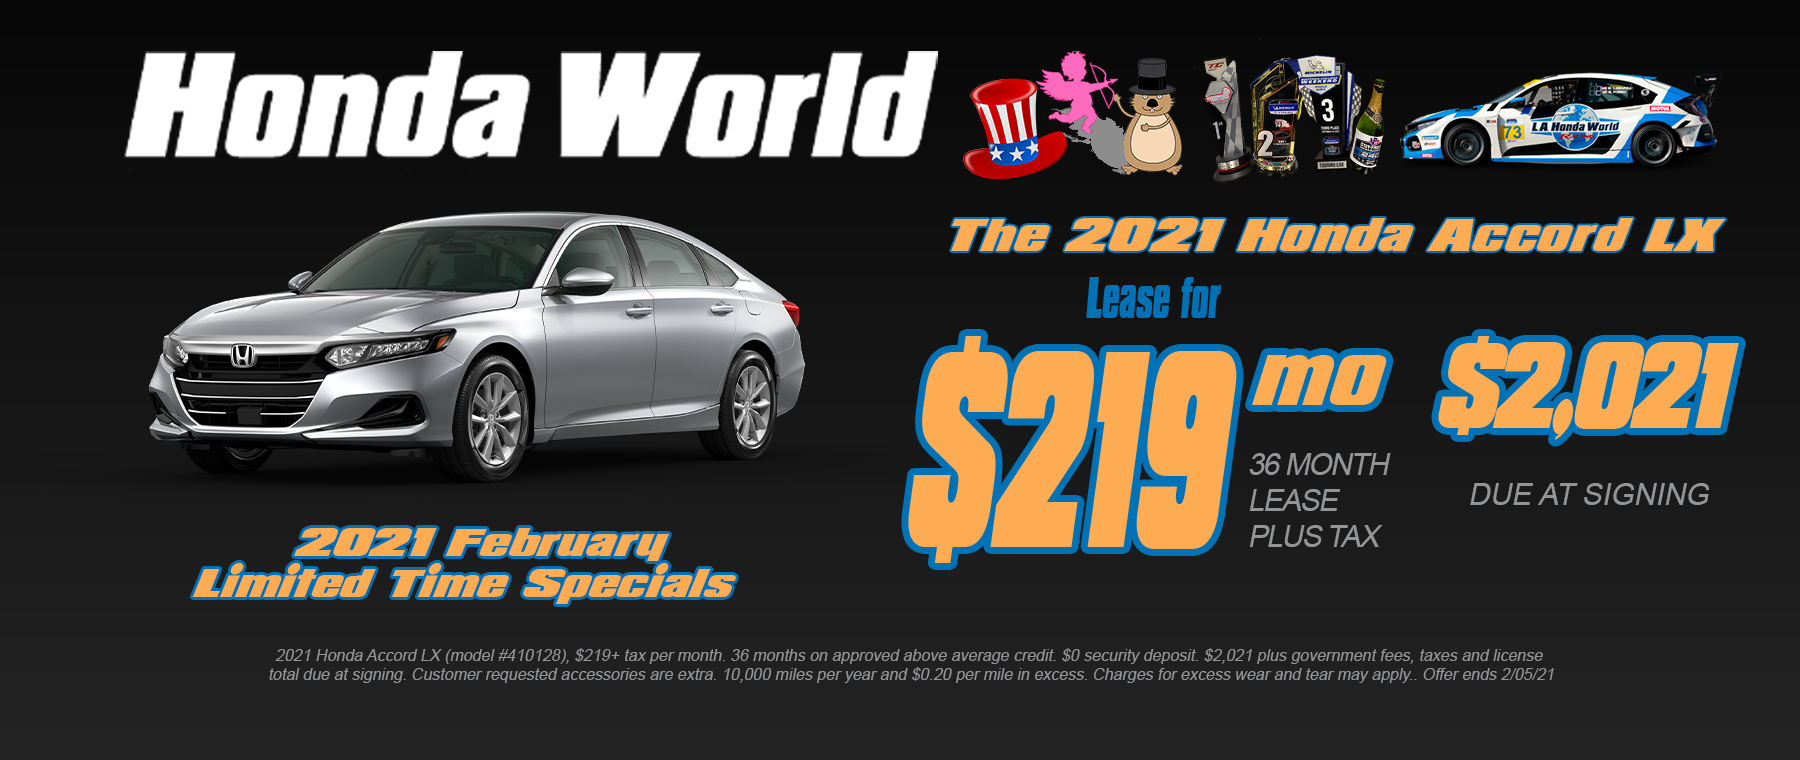 2021 Honda Accord Lease Offer Los Angeles